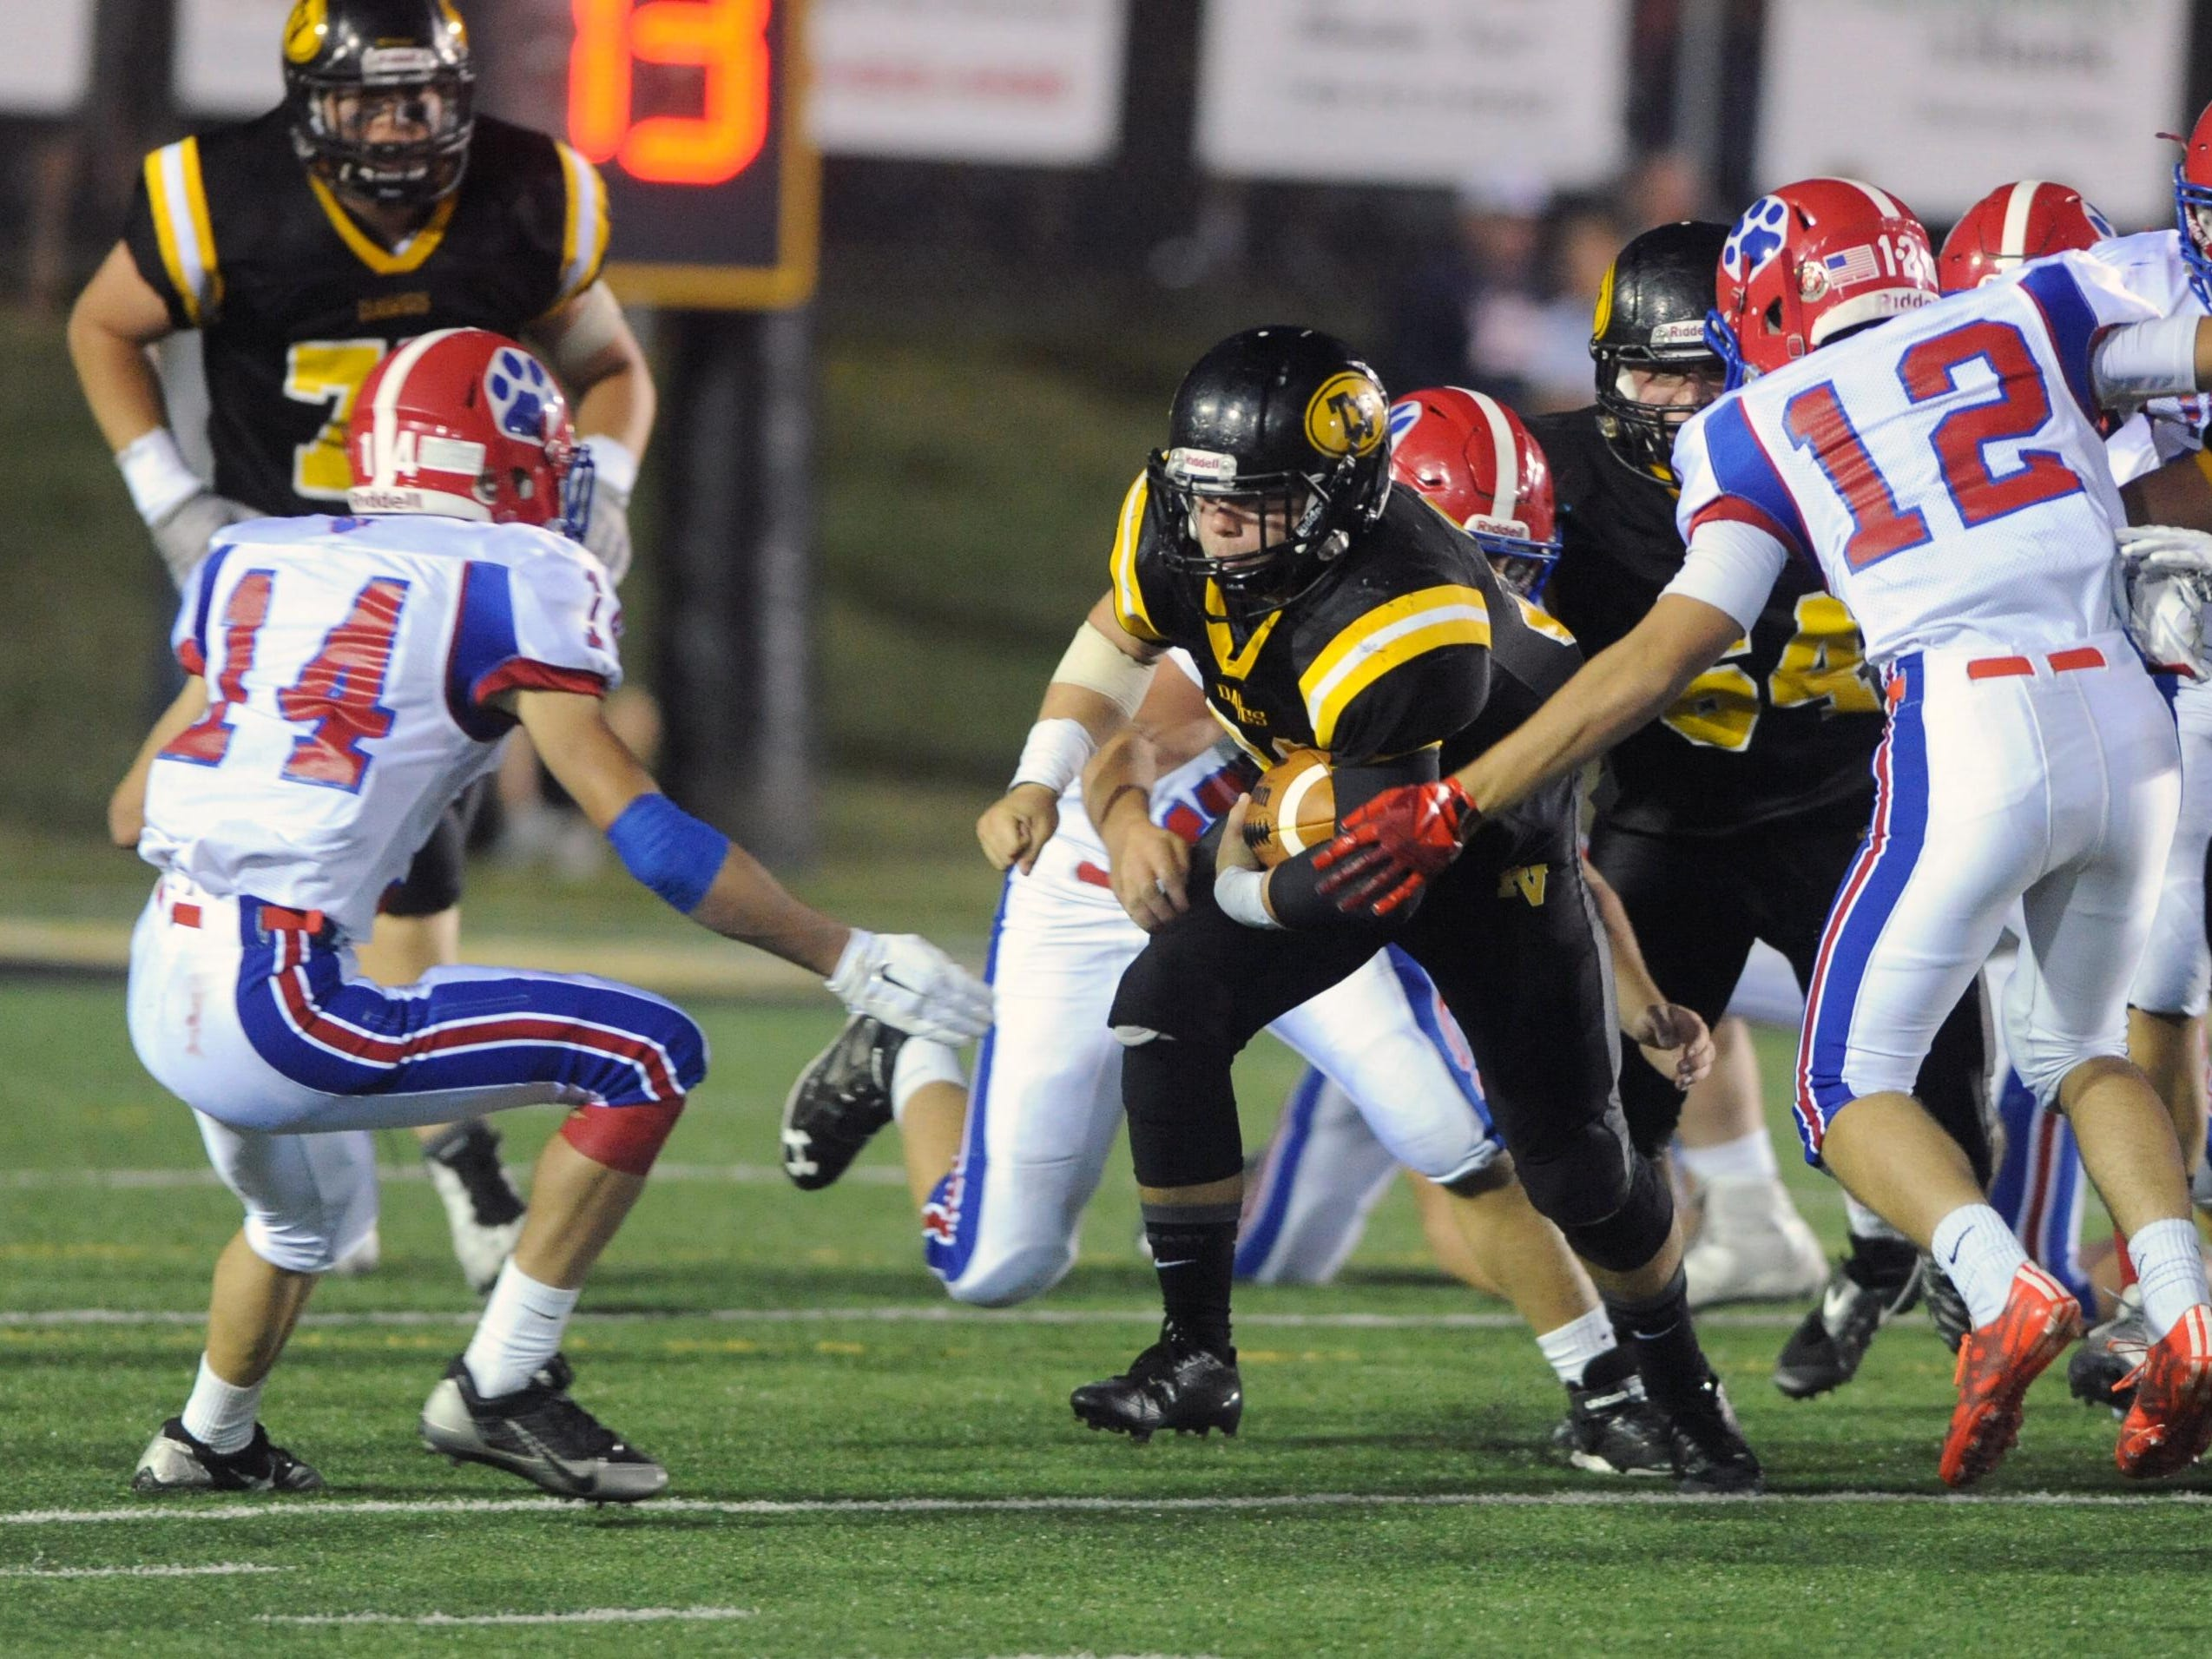 Tri-Valley's Cody Collins sheds tacklers as he bursts through the line during a game against Licking Valley on Friday in Dresden.